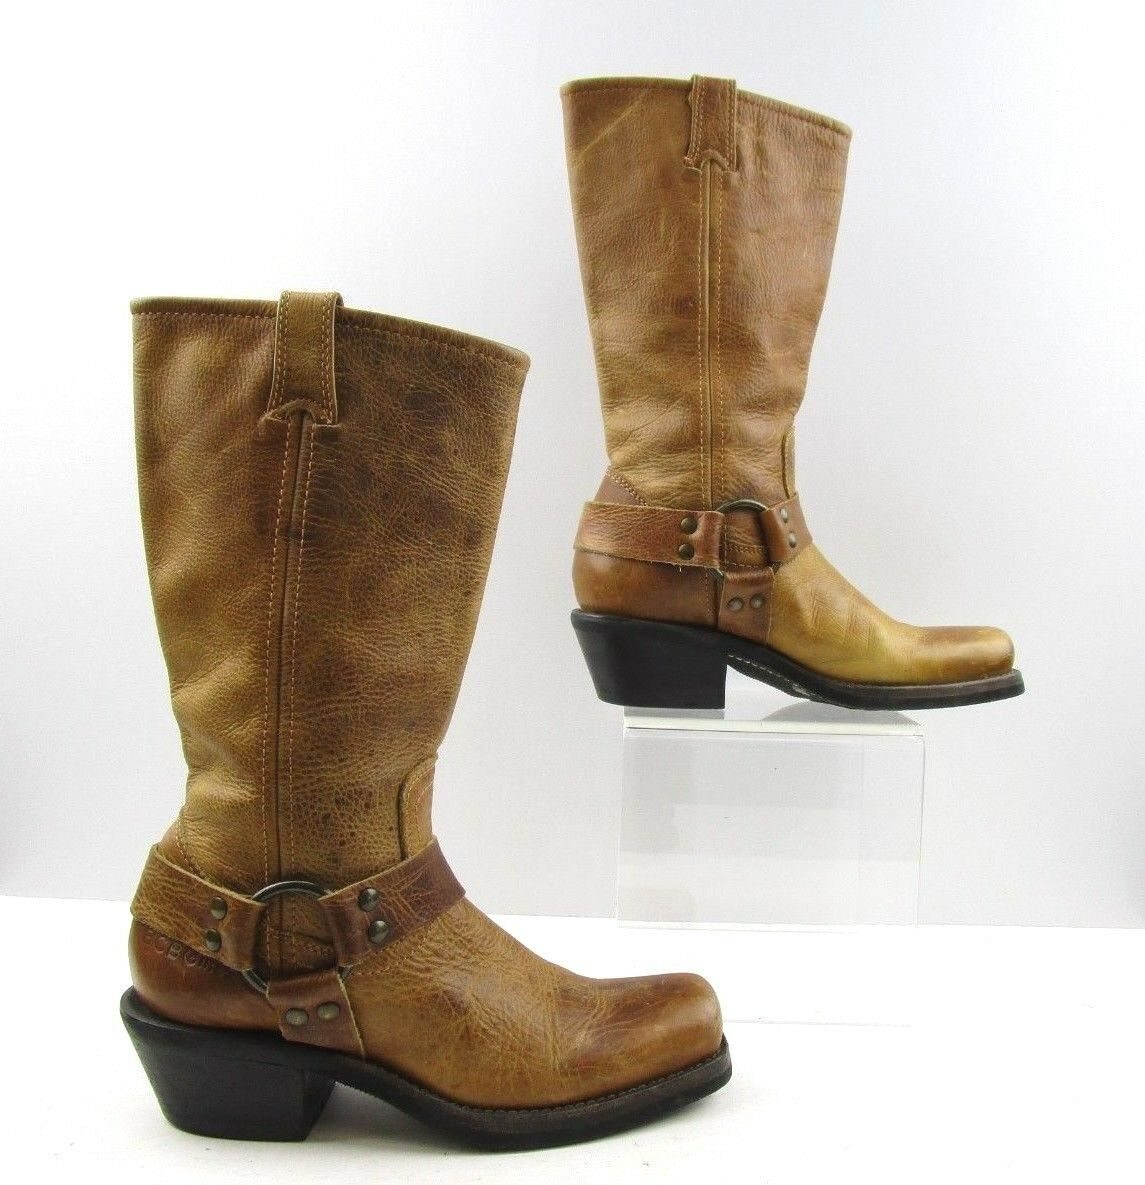 Ladies BCBGirls Brown Leather Leather Leather Square Toe Stirrup Cowboy Boots Size  6.5 B 1861e6